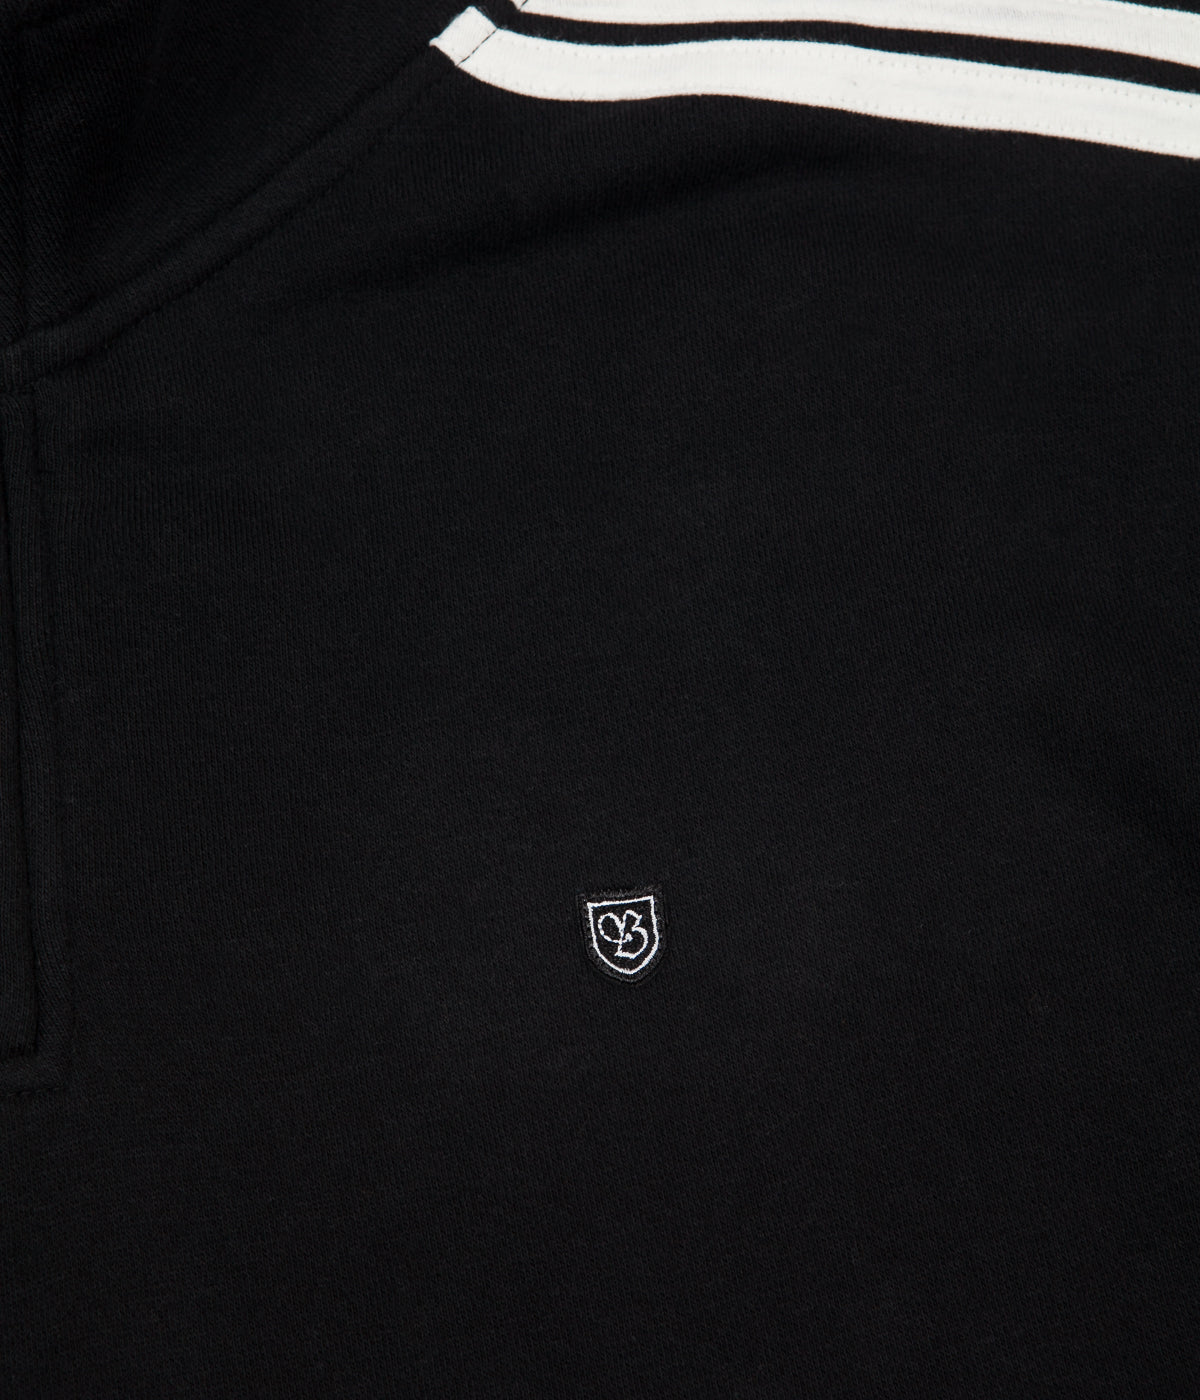 Brixton B-Shield 1/2 Zip Sweatshirt - Black / Cream